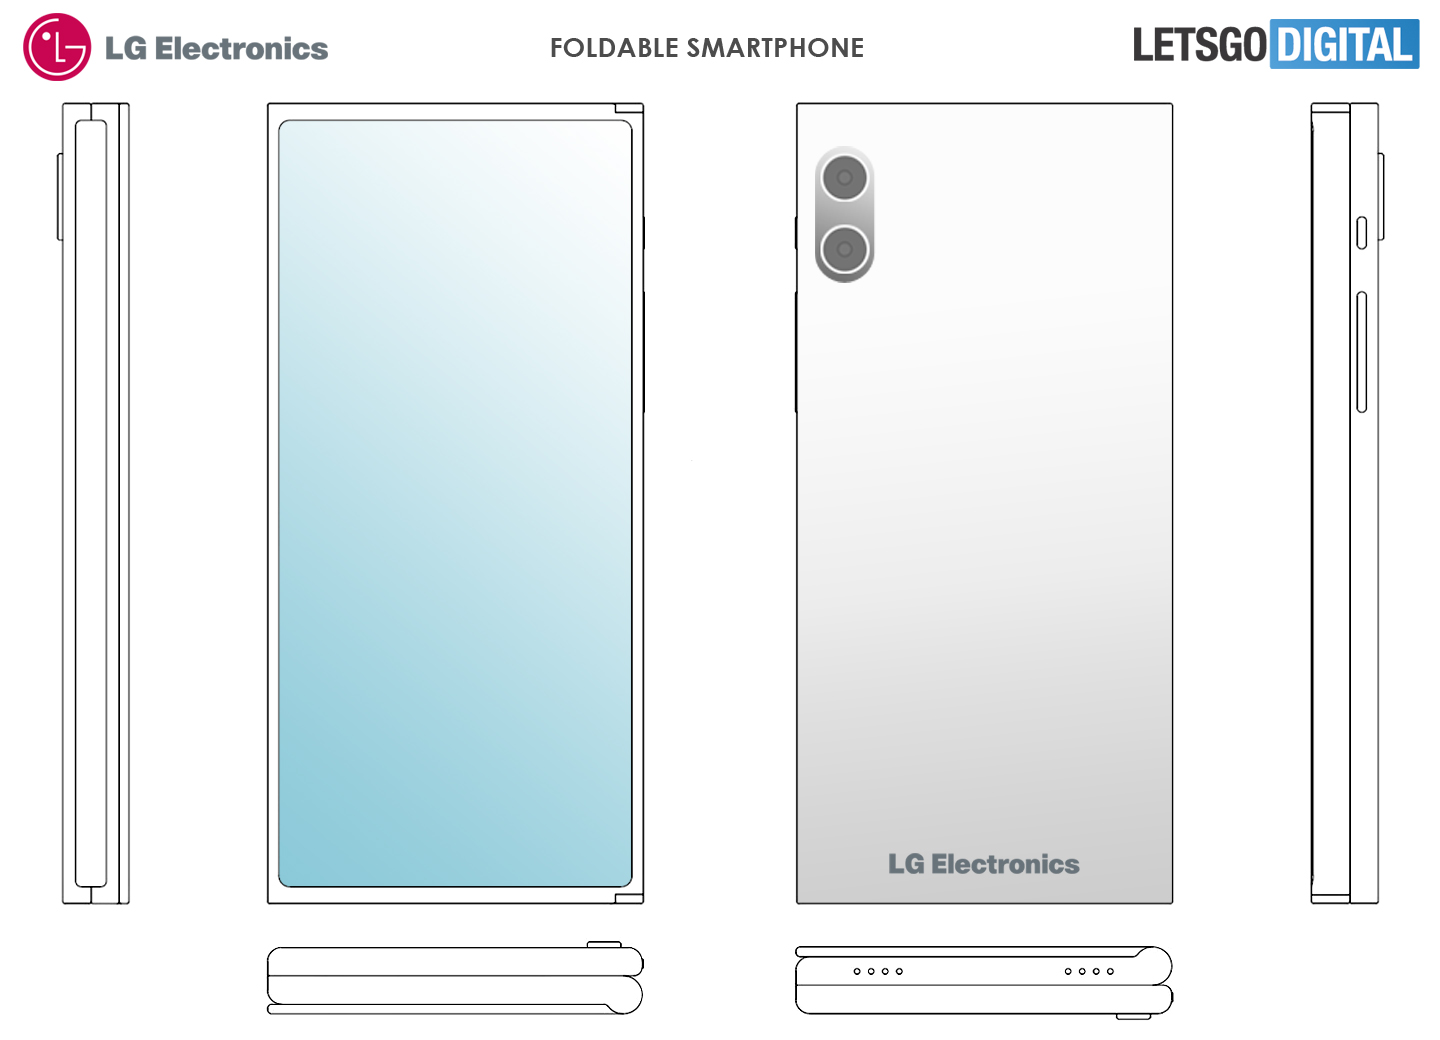 LG solves the tri-fold smartphone problem with innovative patent 3